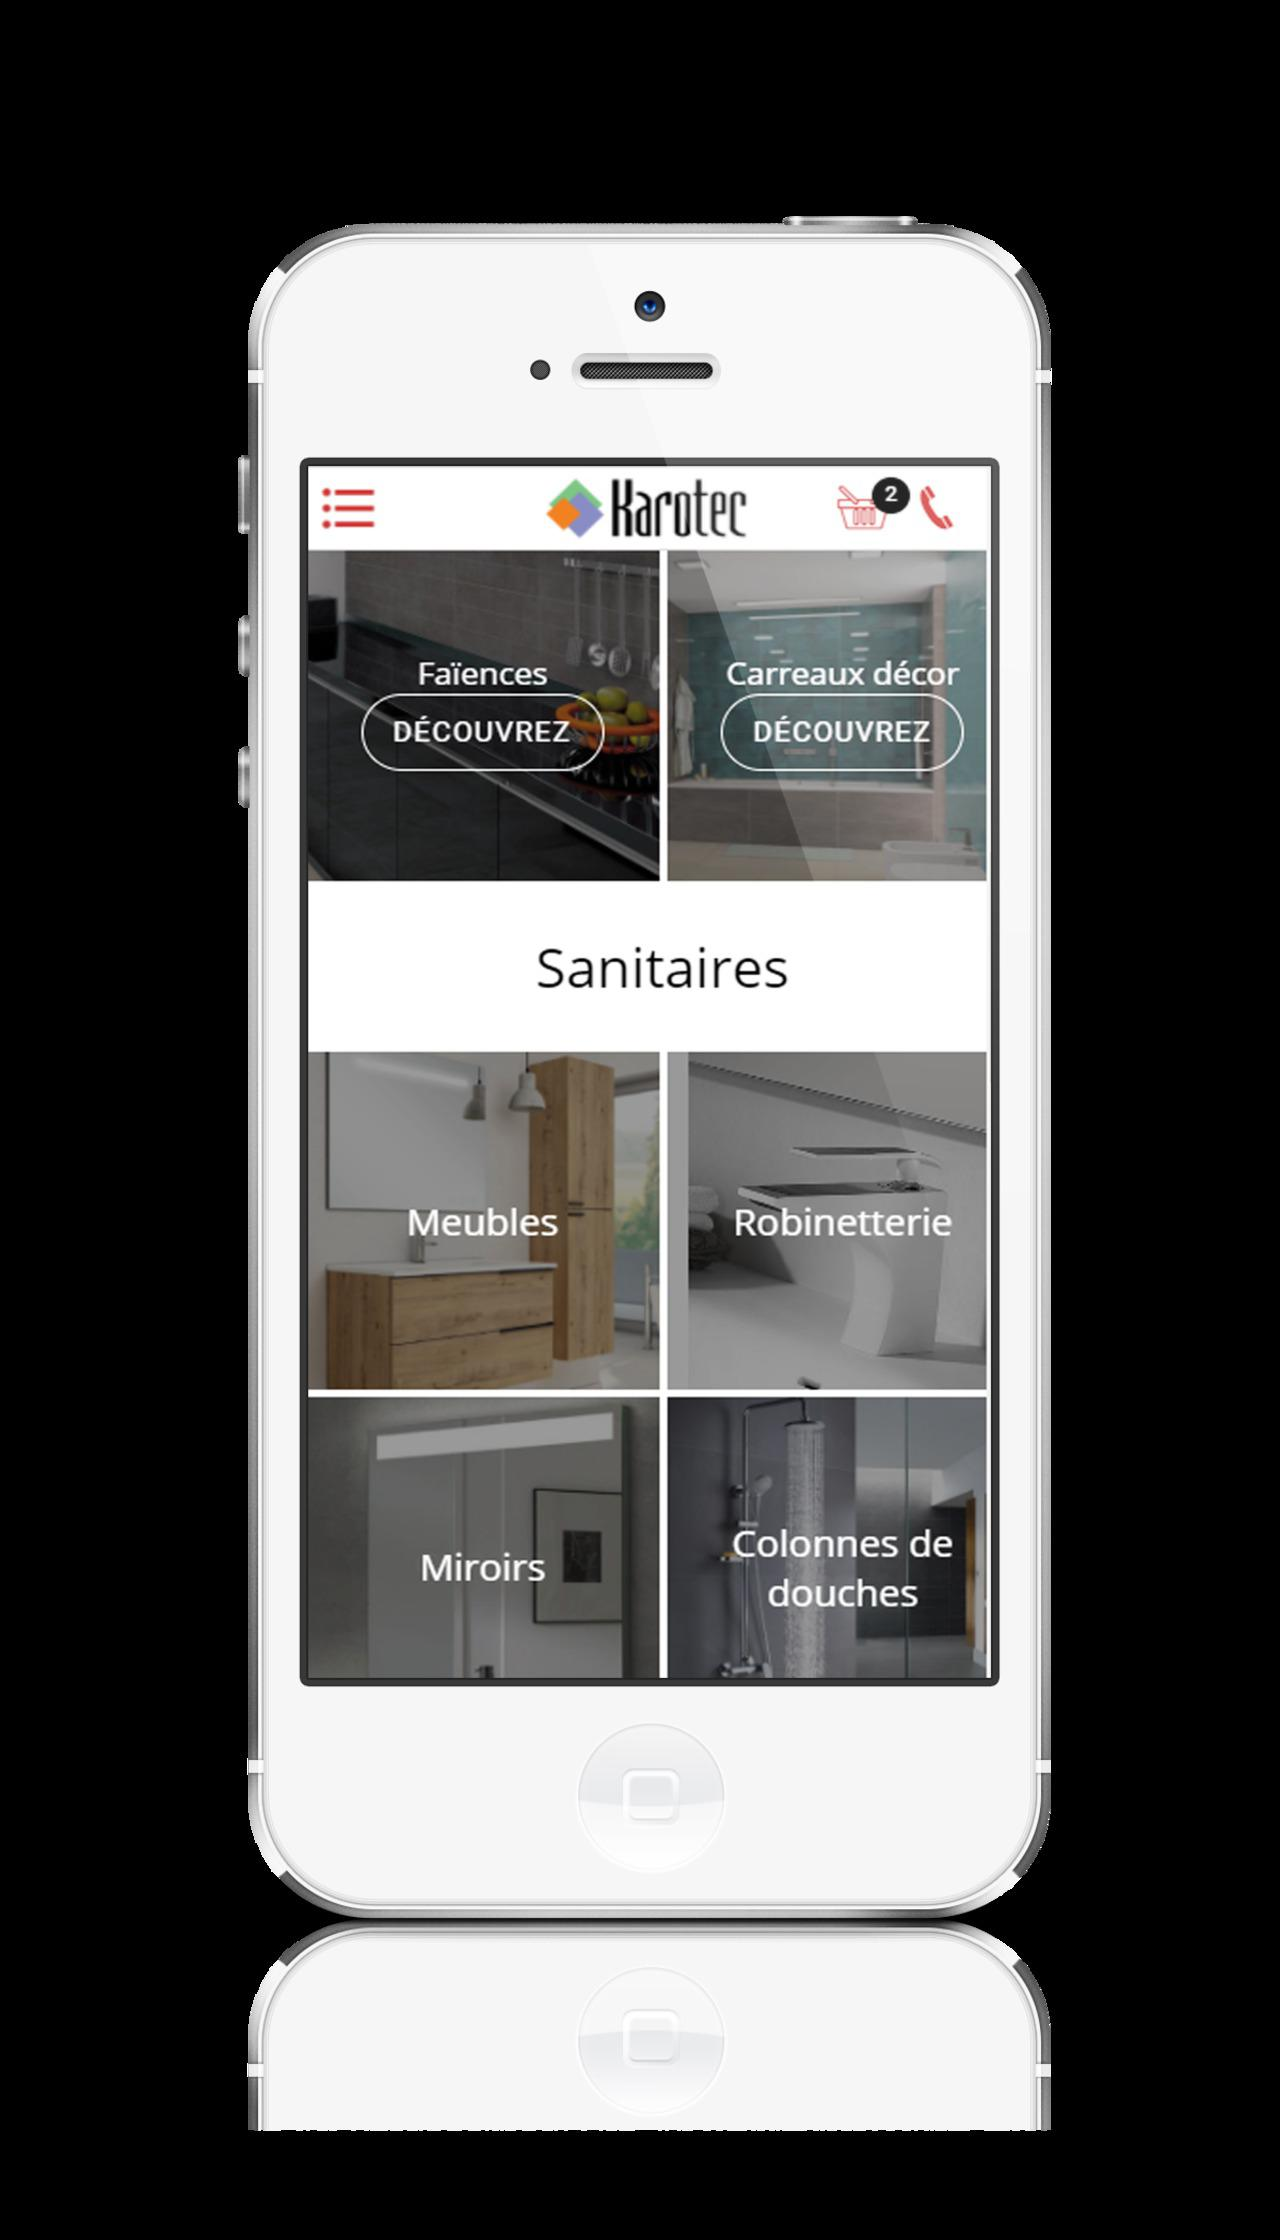 Application mobile pour un magasin de carrelages et sanitaires